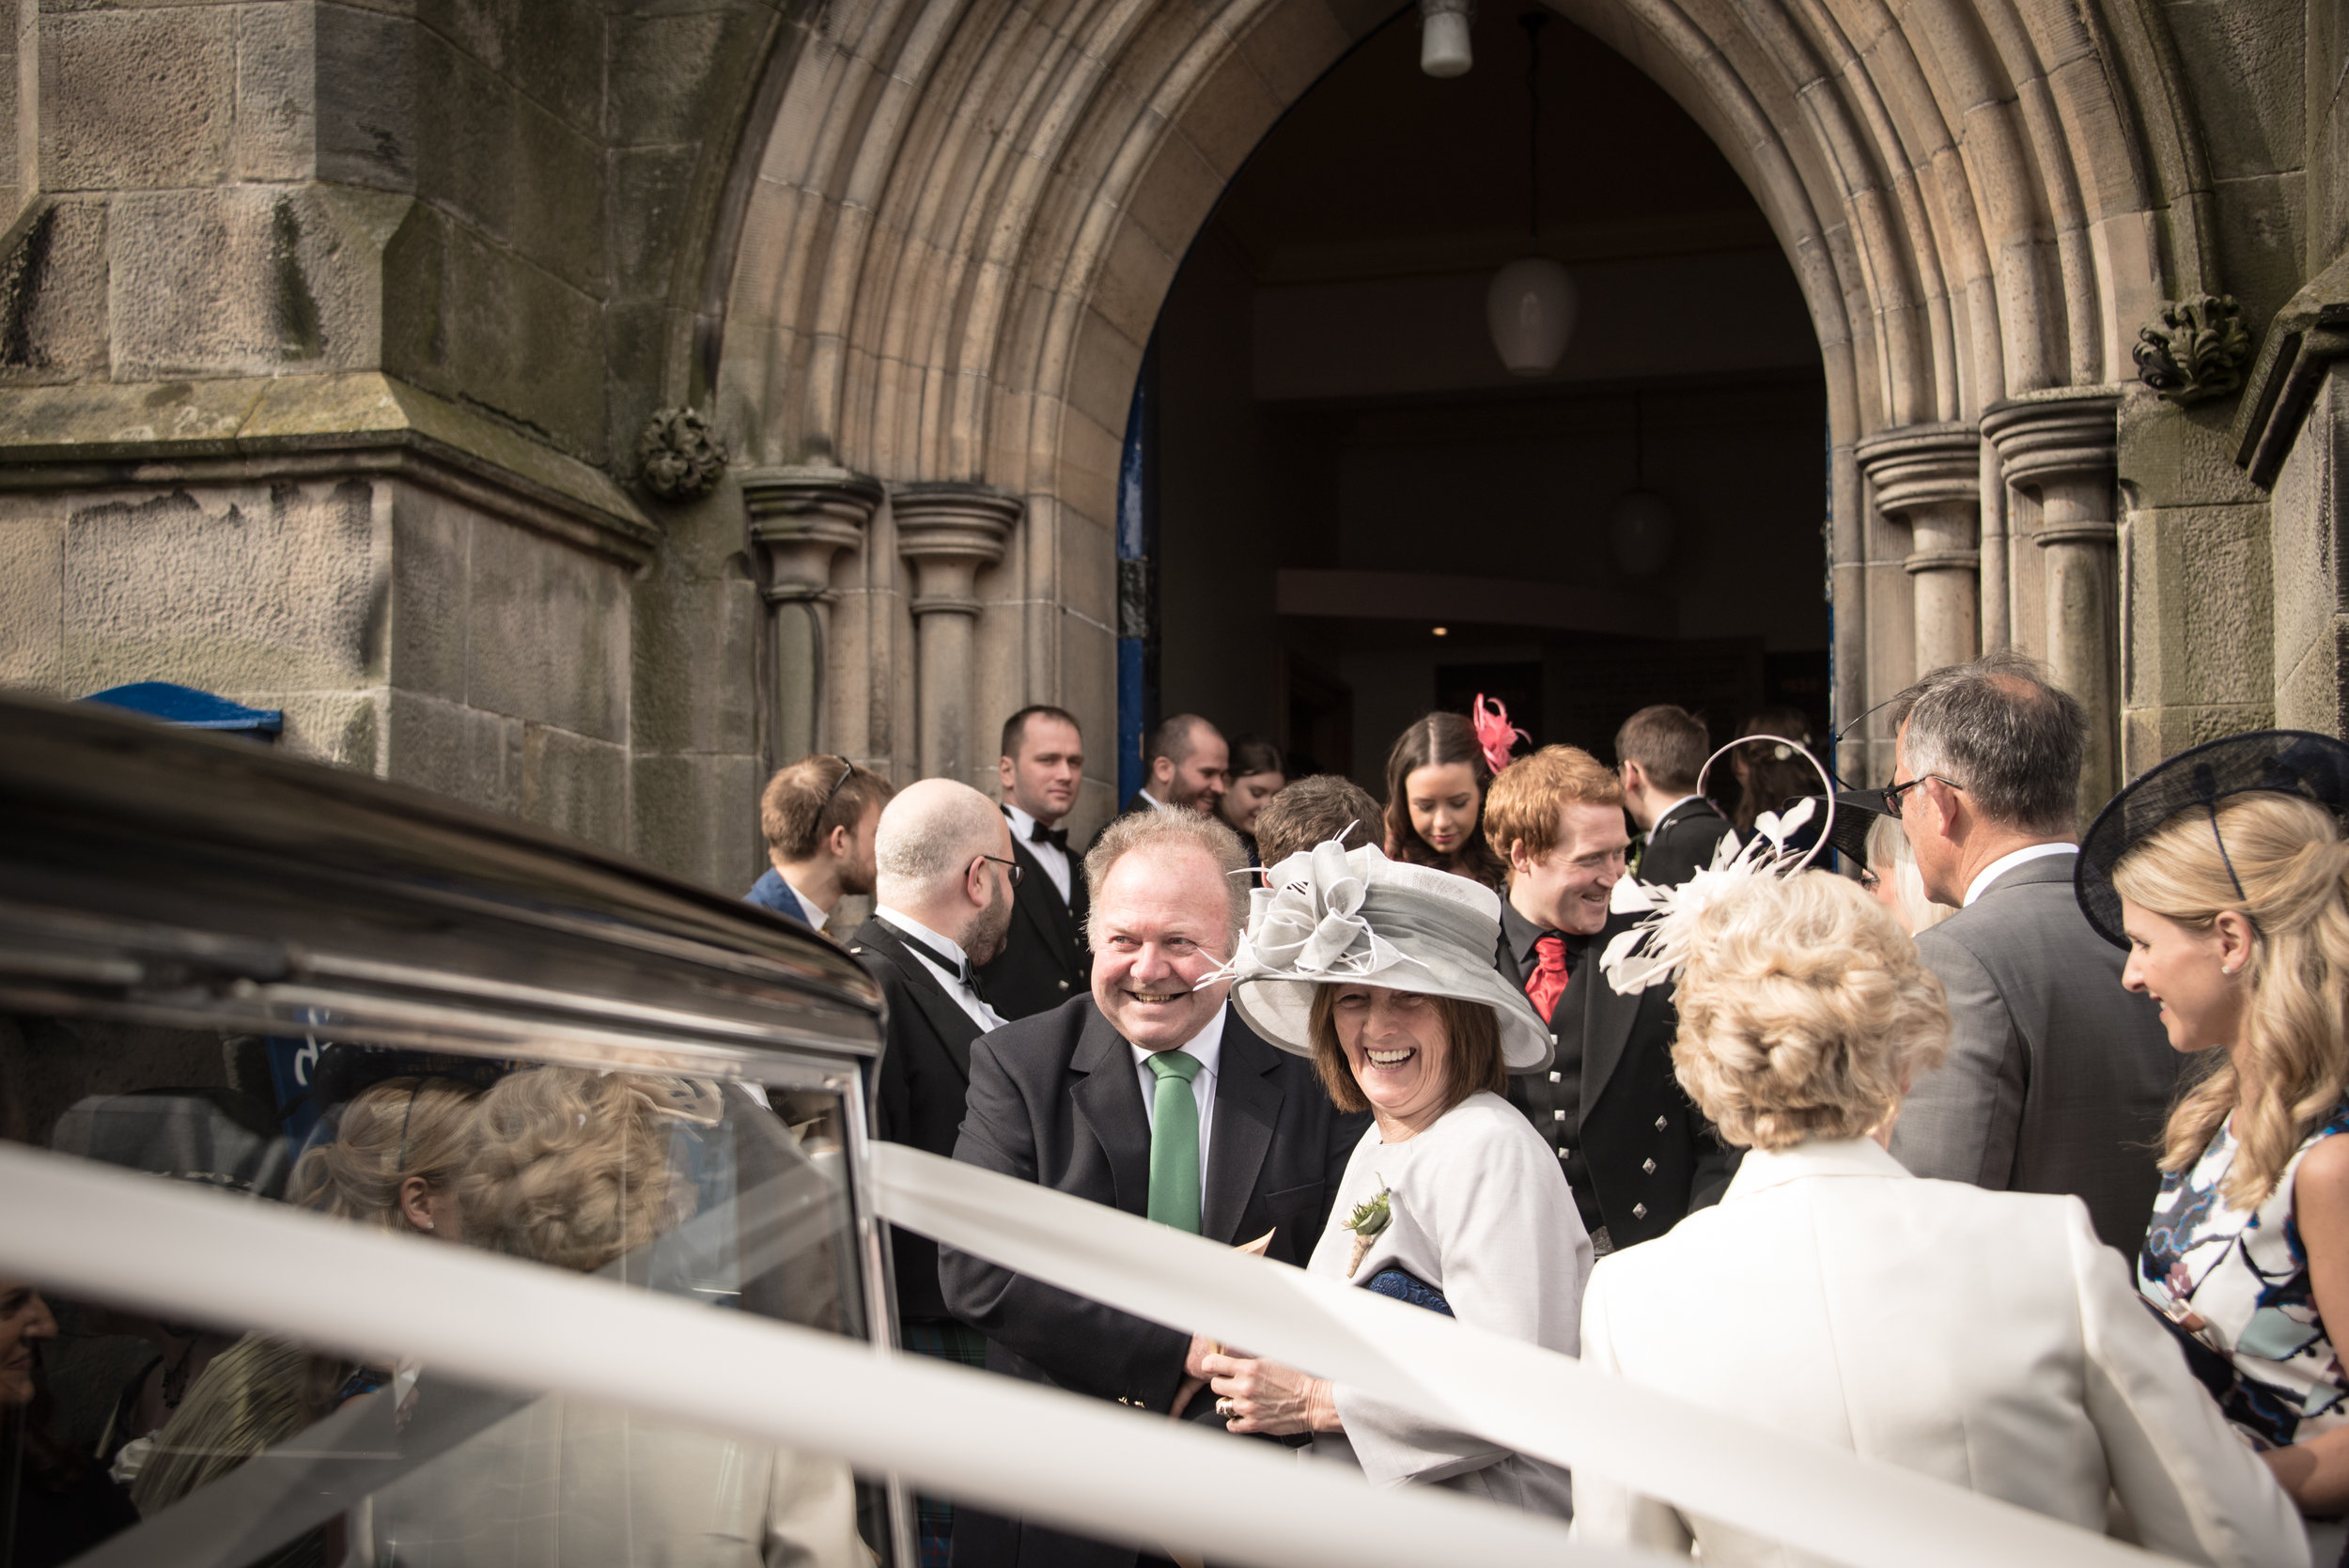 2016-04-02 SIONED AND NEIL FALKLAND MYRES CASTLE152154.jpg